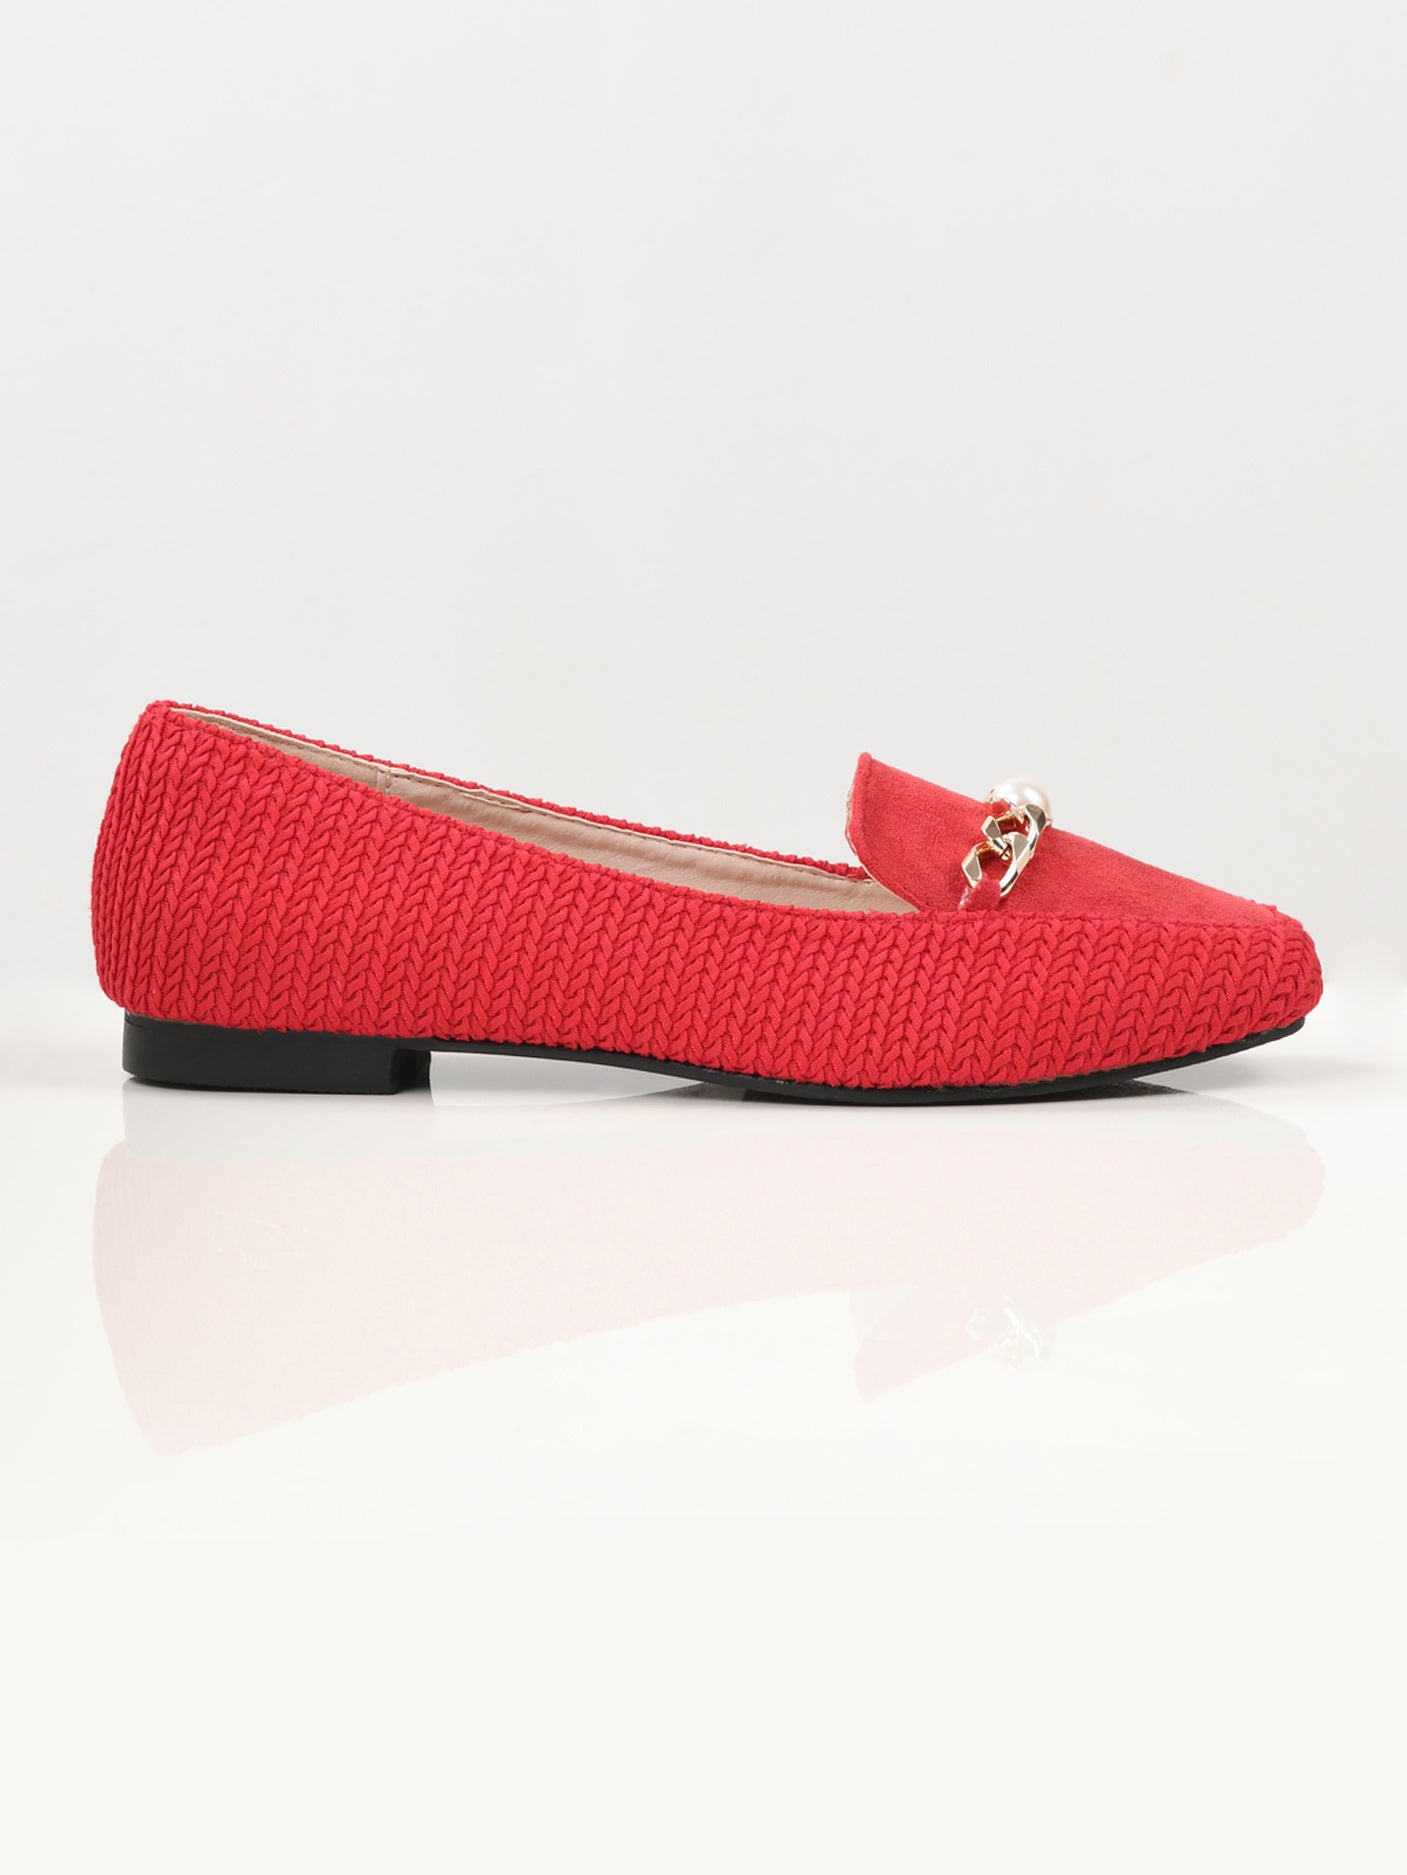 Textured Chain Shoes - Red